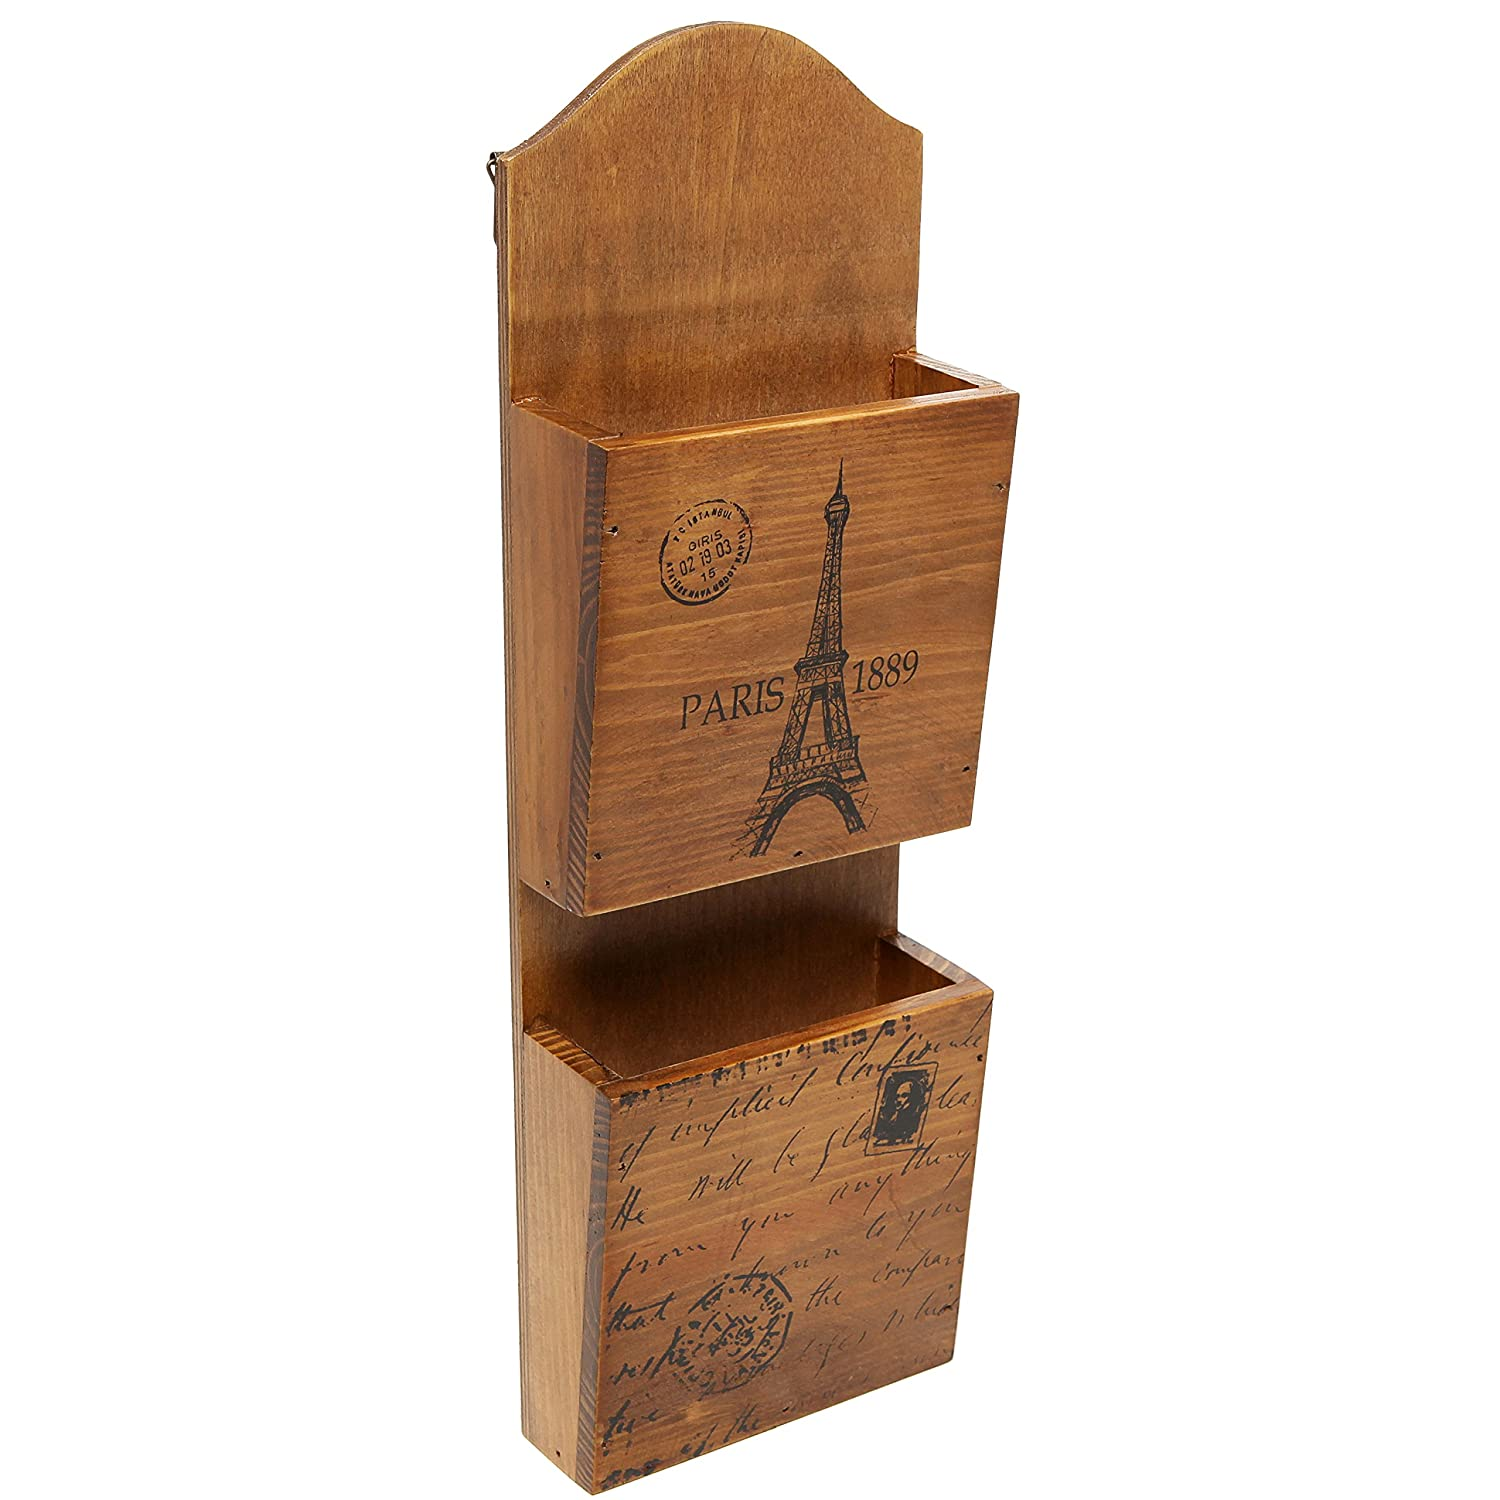 Amazon.com: Classic Vintage French Paris Eiffel Tower Rustic ...